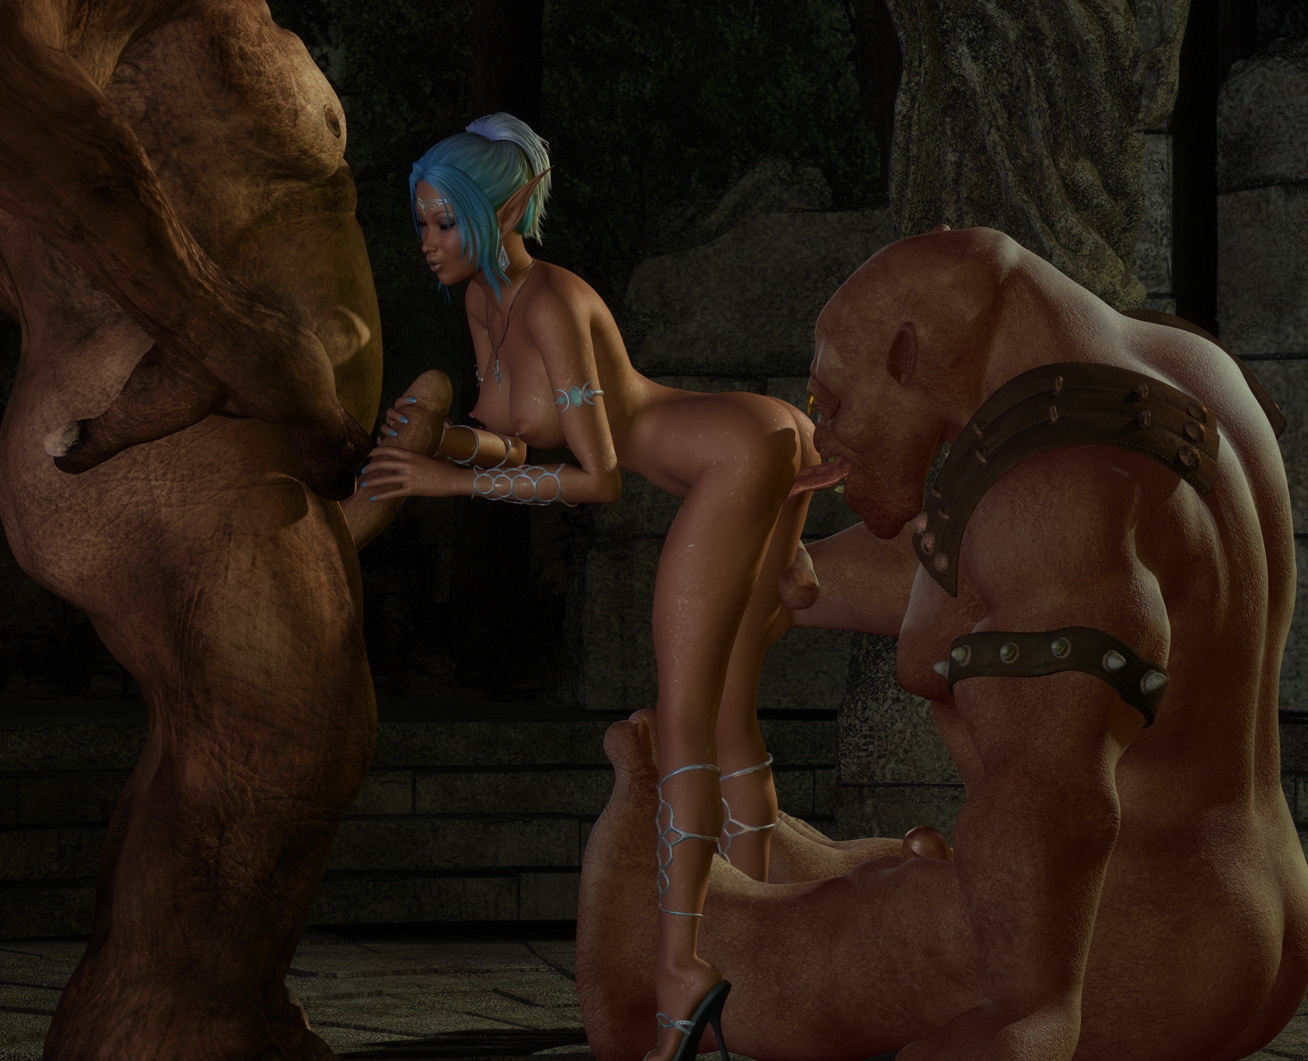 Pictures of elves having sex adult pics